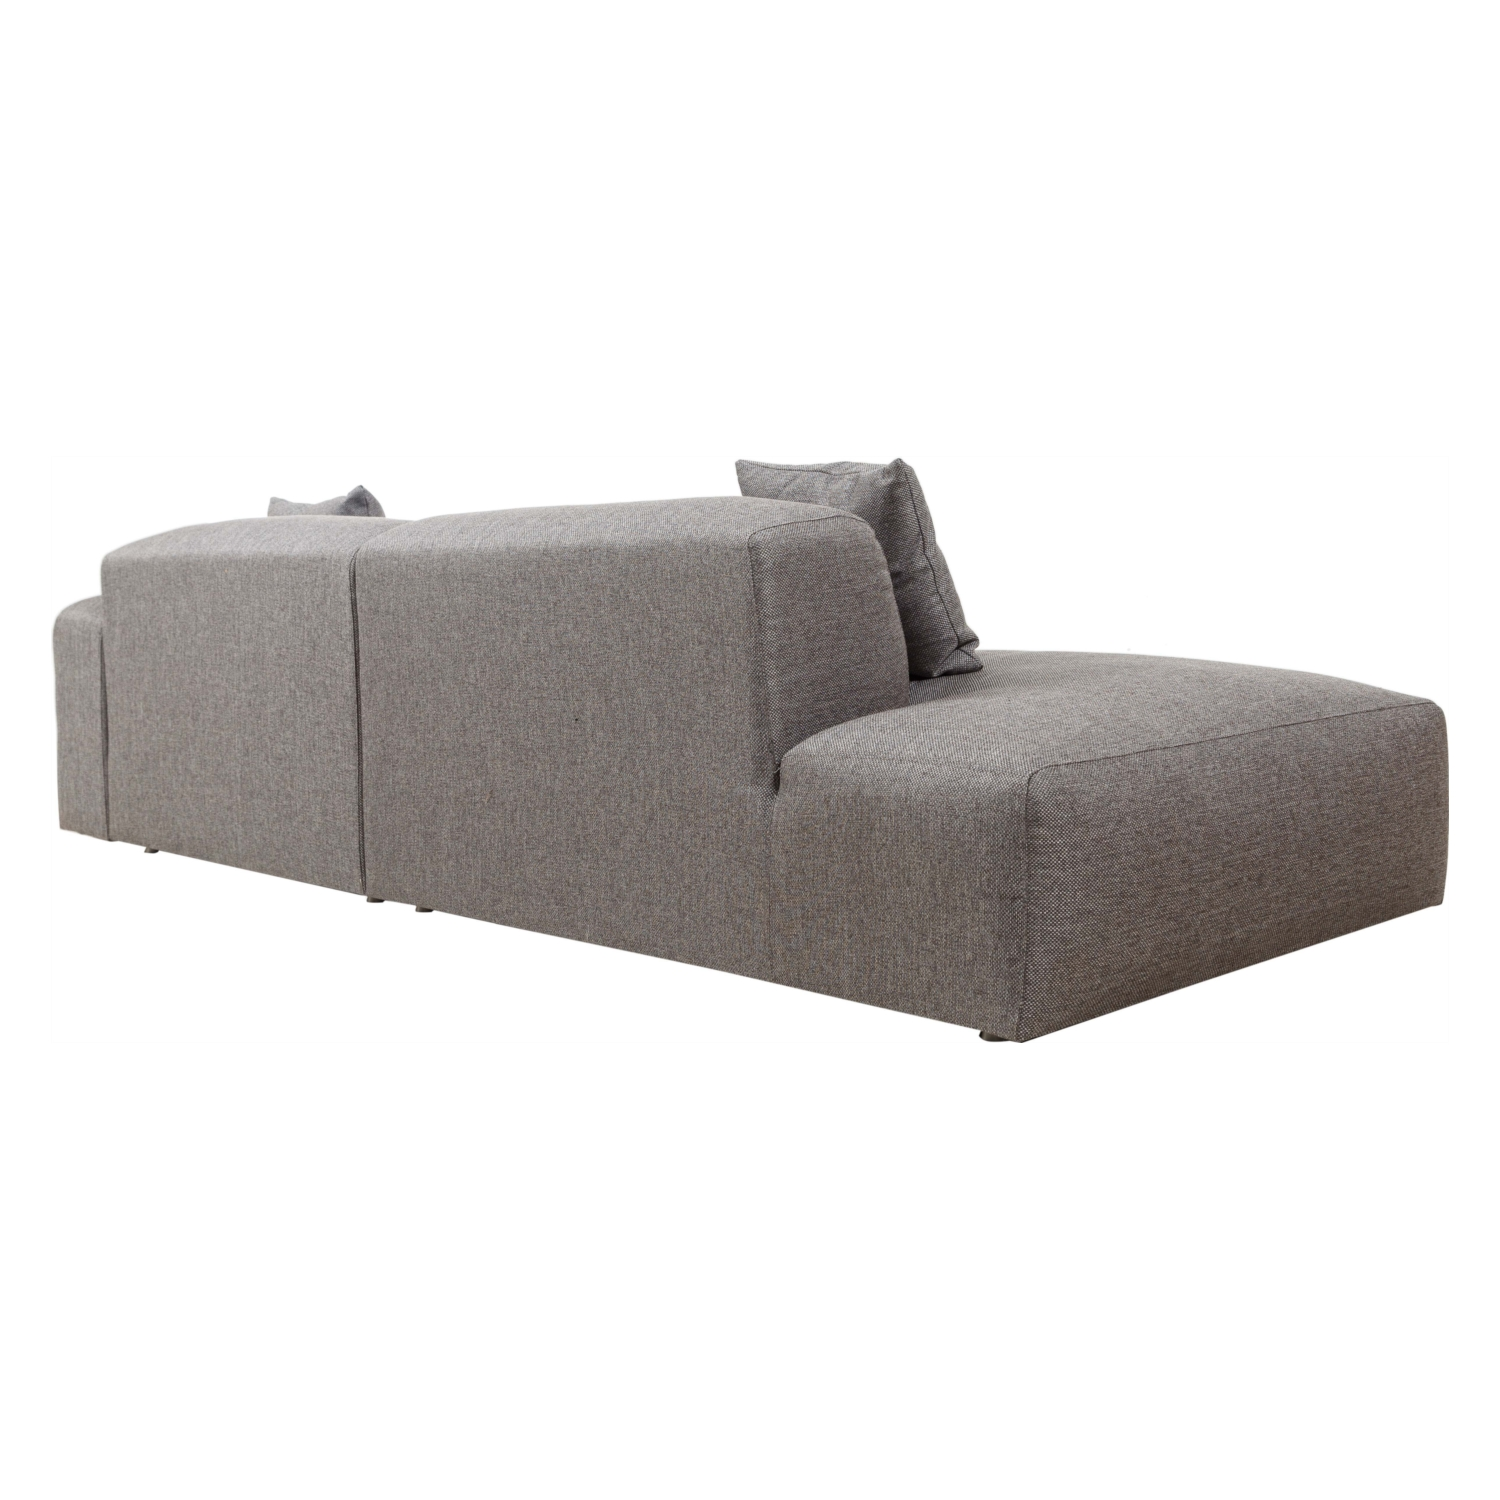 BERLIN DAYBED GRİ SOL